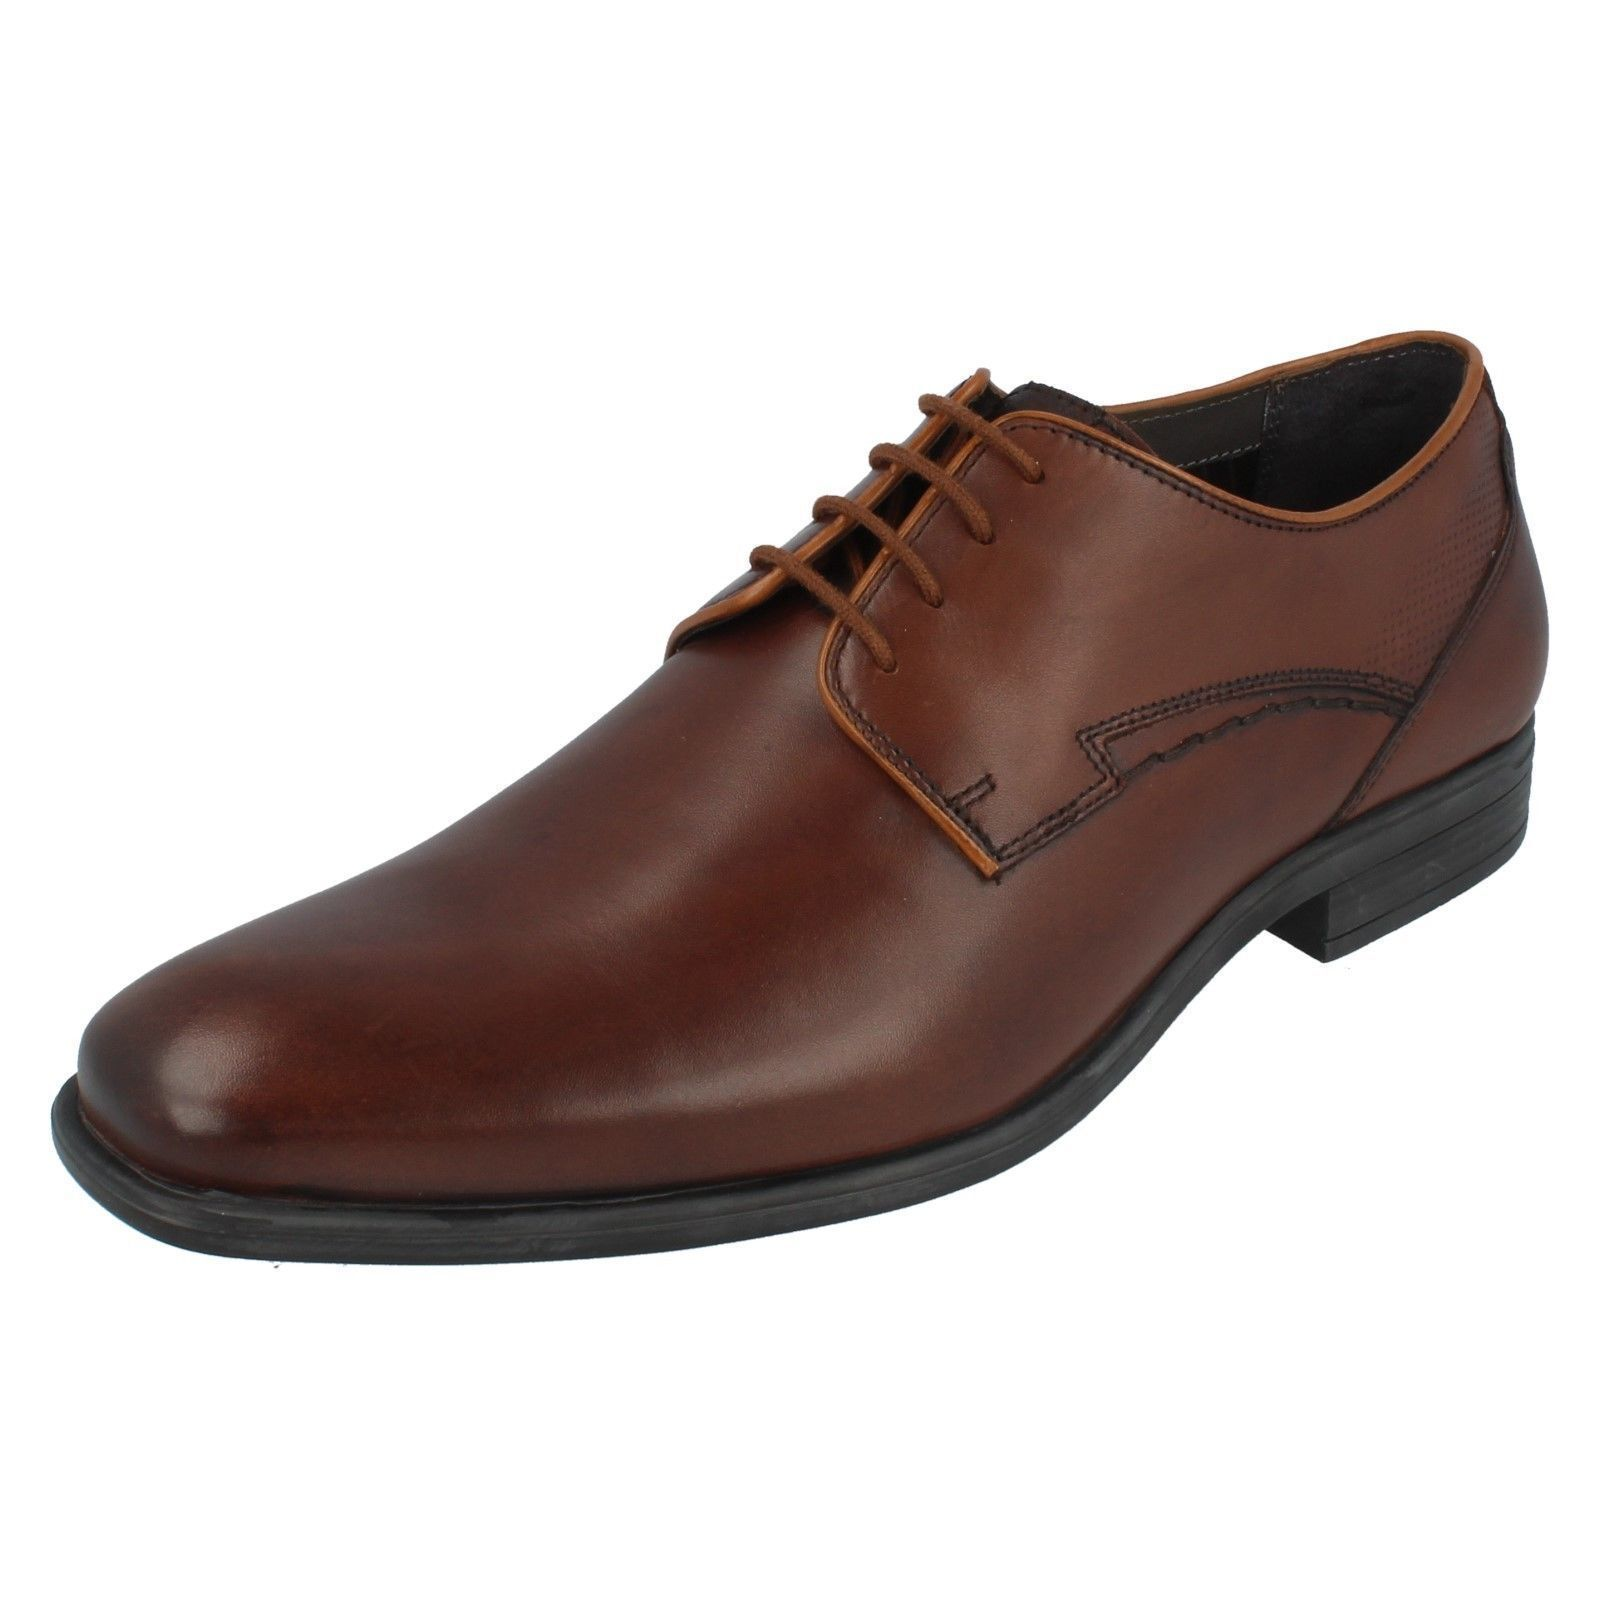 Mens Brown Leather Lace Up Hush Puppies Shoes - Kane Maddow